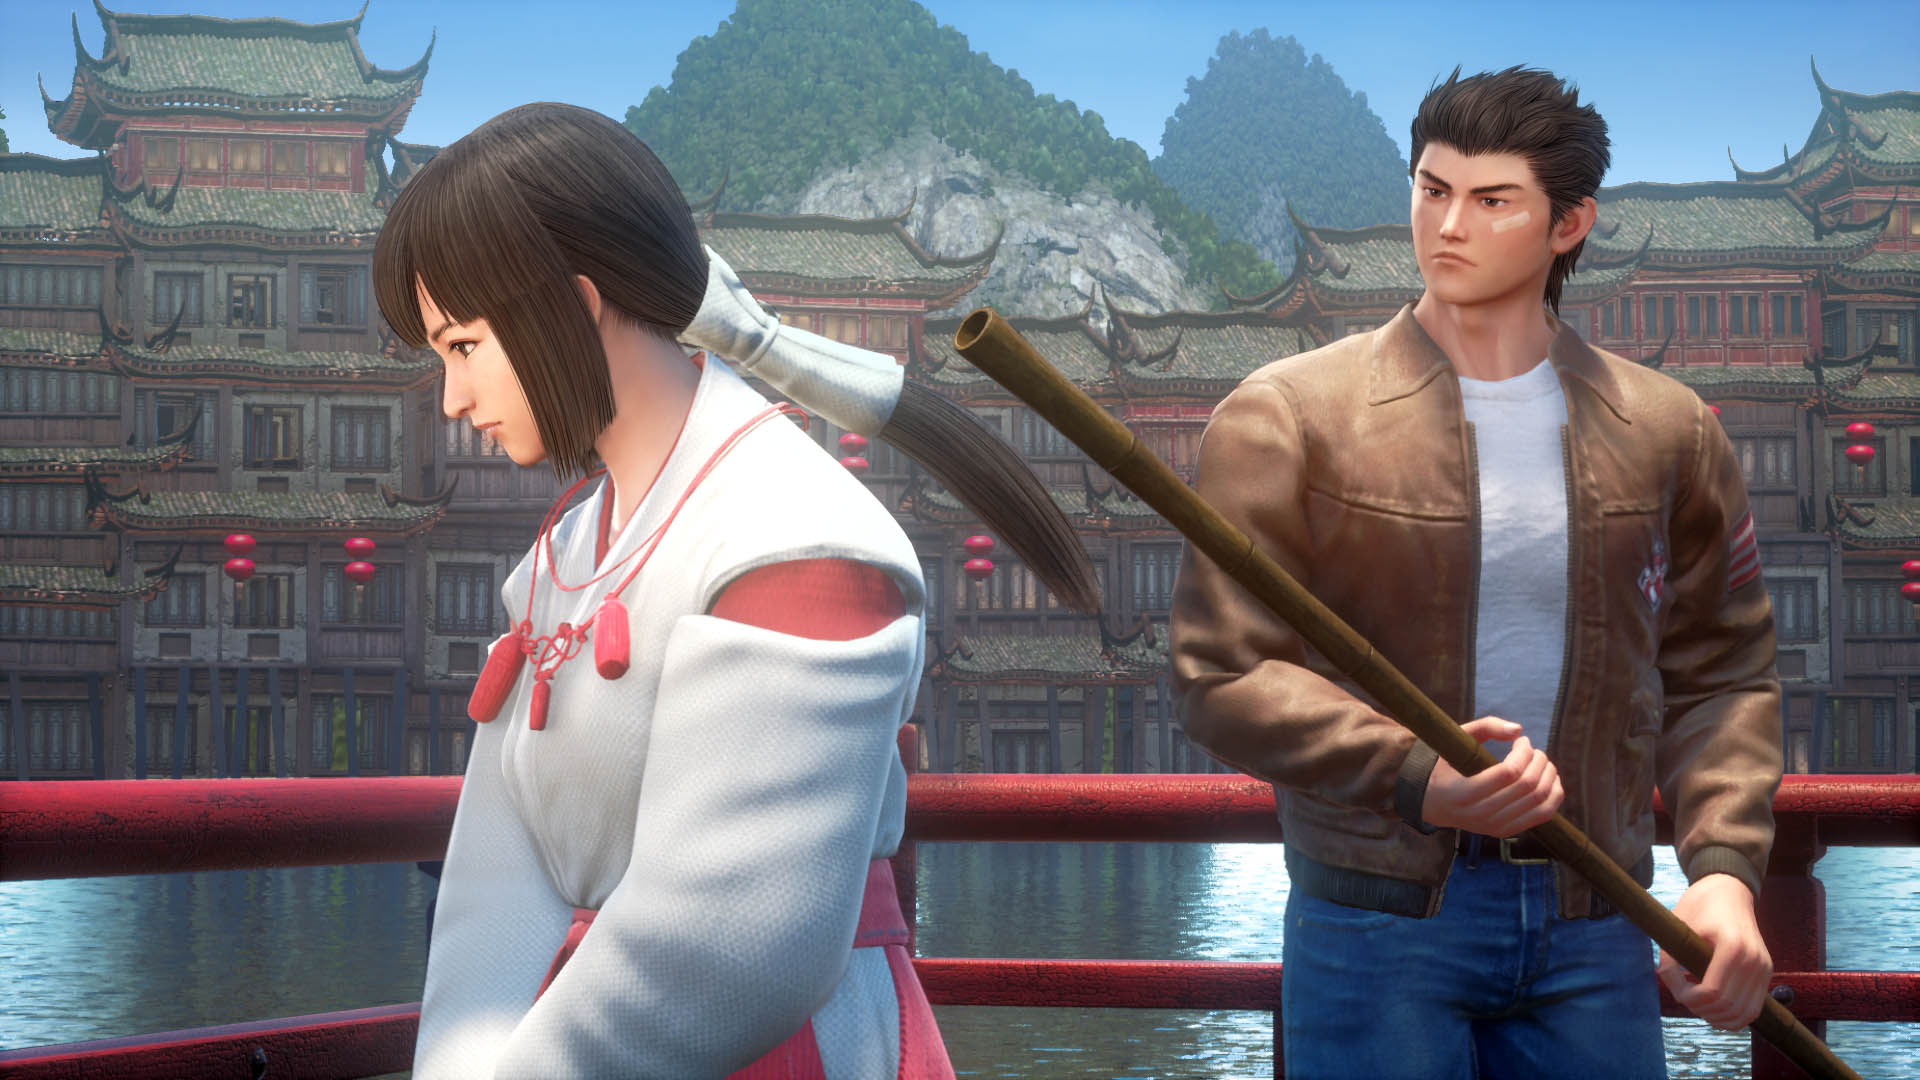 Shenmue III Story